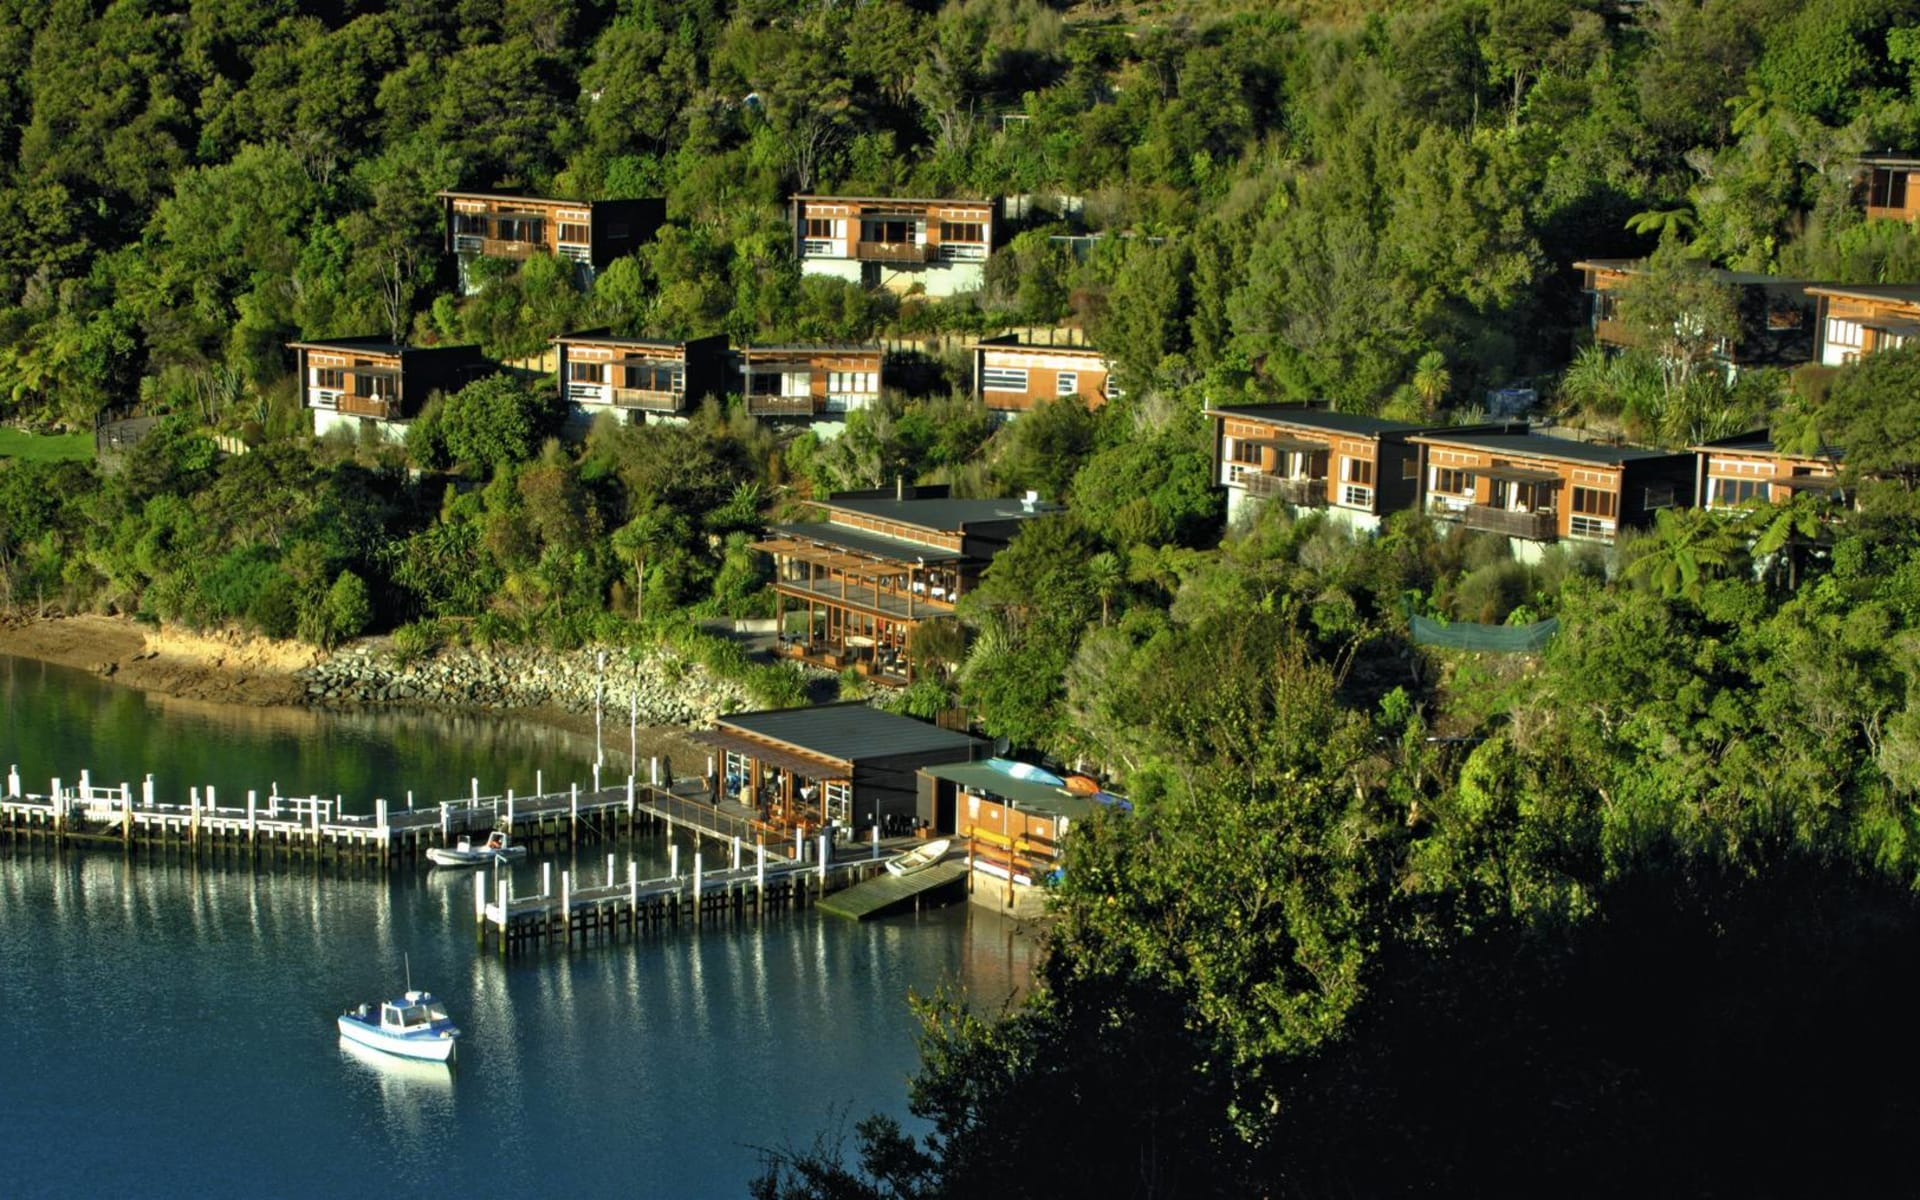 Bay of Many Coves Resort in Marlborough Sounds:  Bay of Many Coves - Vogelperspektive